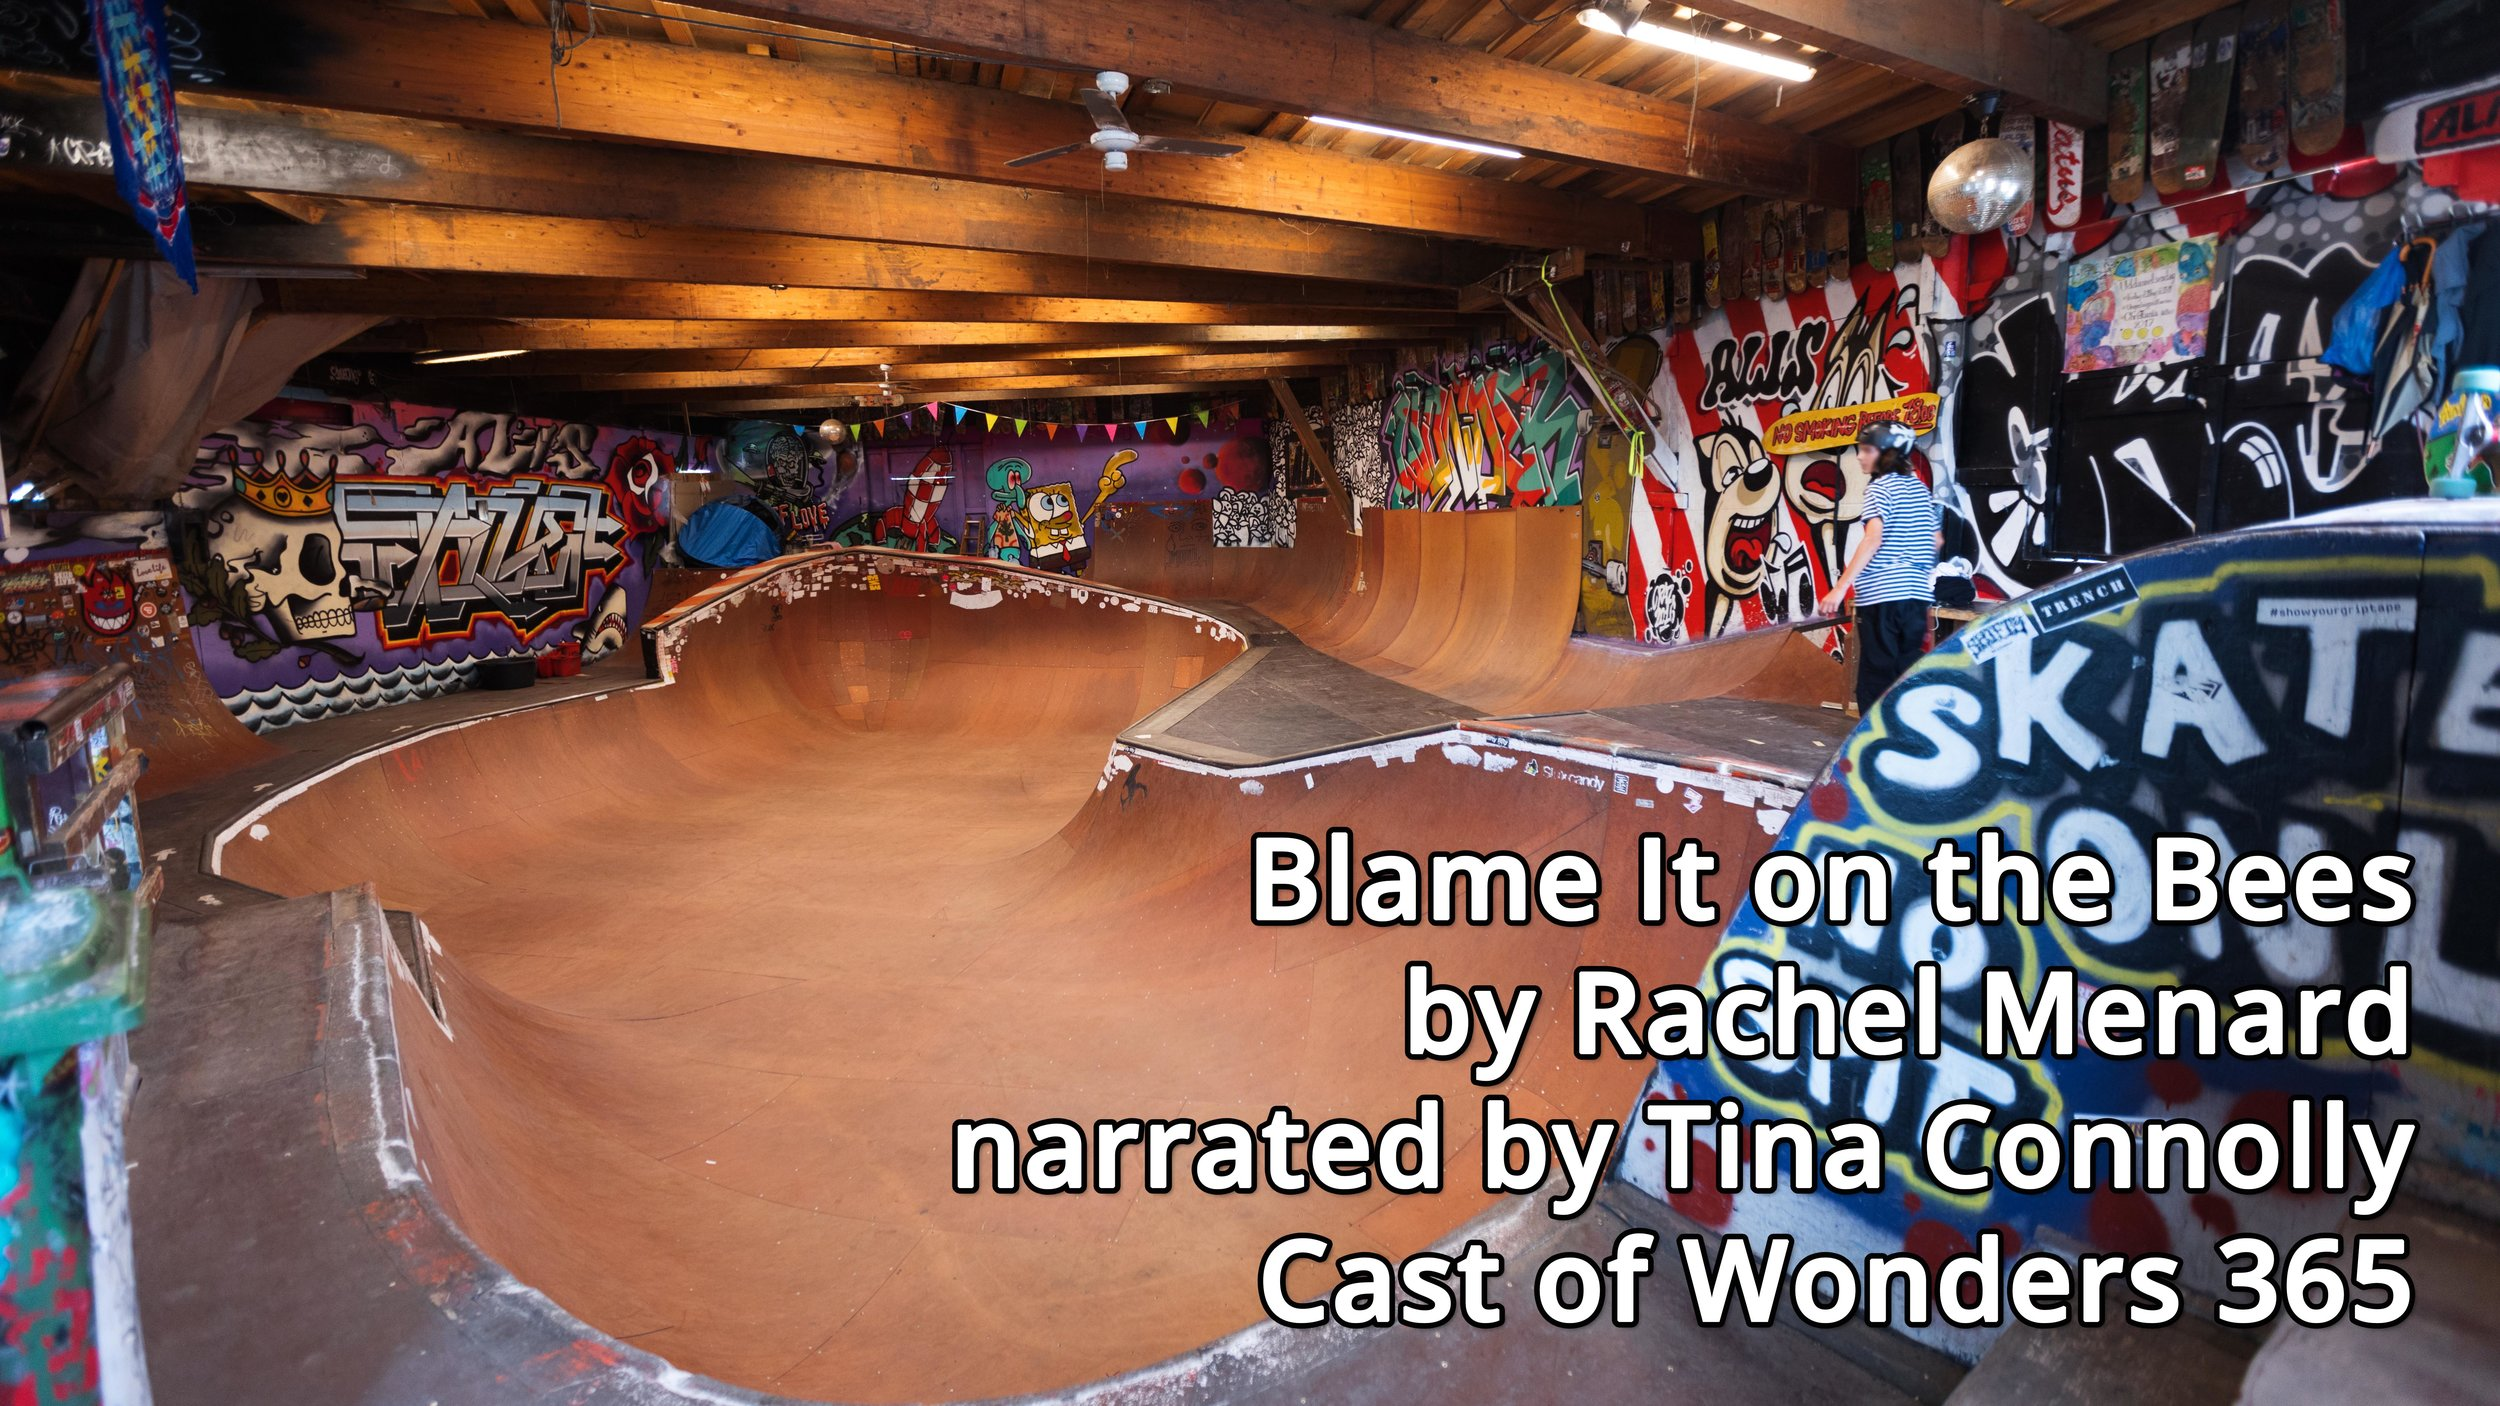 Blame it on the Bees - Cast of Wonders - Episode 365Blame it on the Bees came from a conversation about composting hair, and what might grow in a garden made with a piece of someone else. You can read or listen to it on www.castofwonders.org or download it on any podcast app.